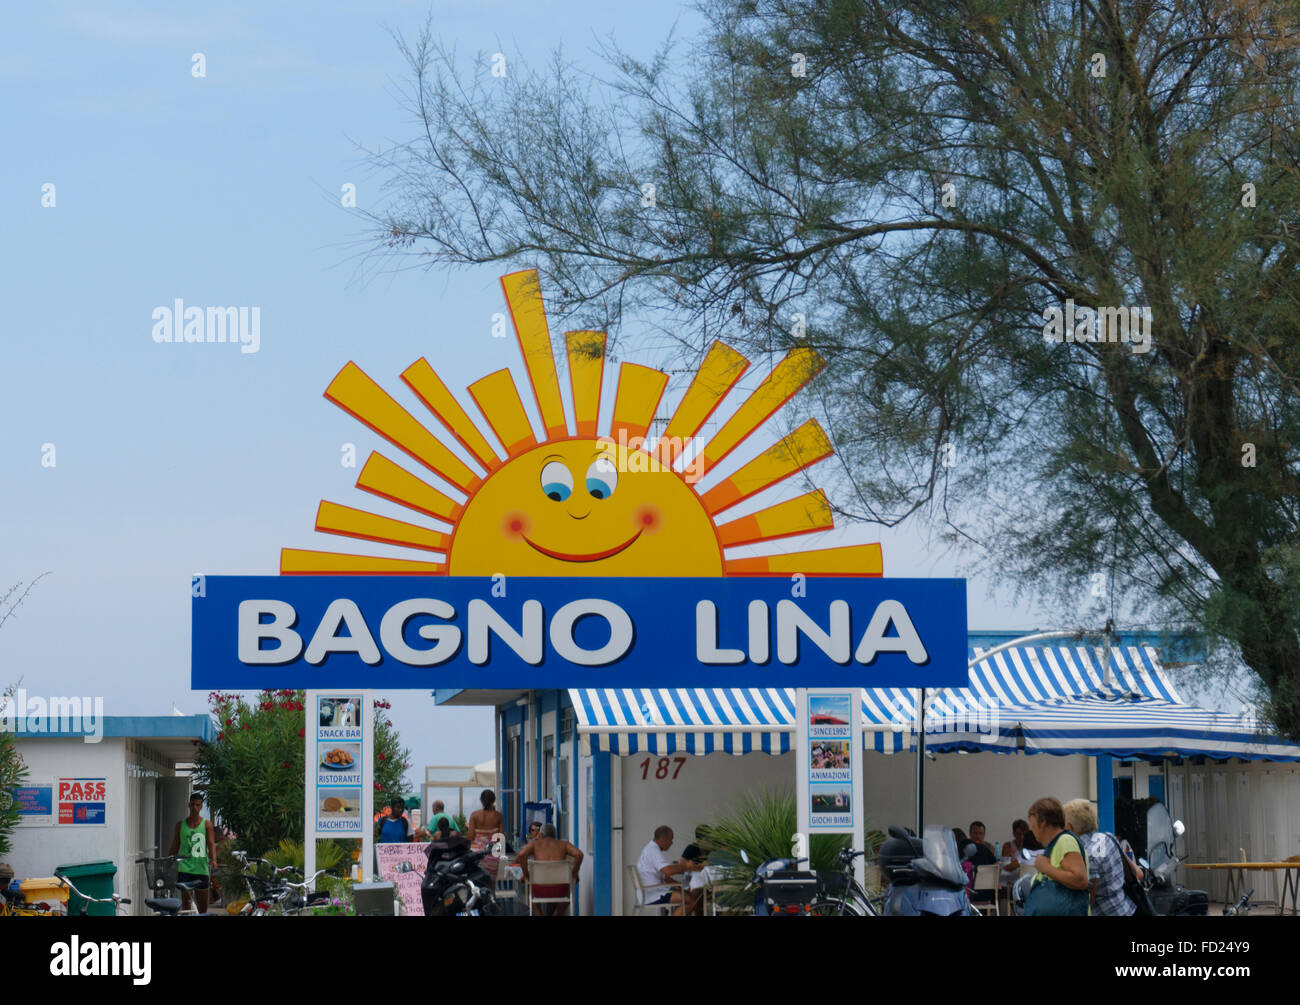 Cervia beach immagini cervia beach fotos stock alamy - Bagno palm beach pinarella ...